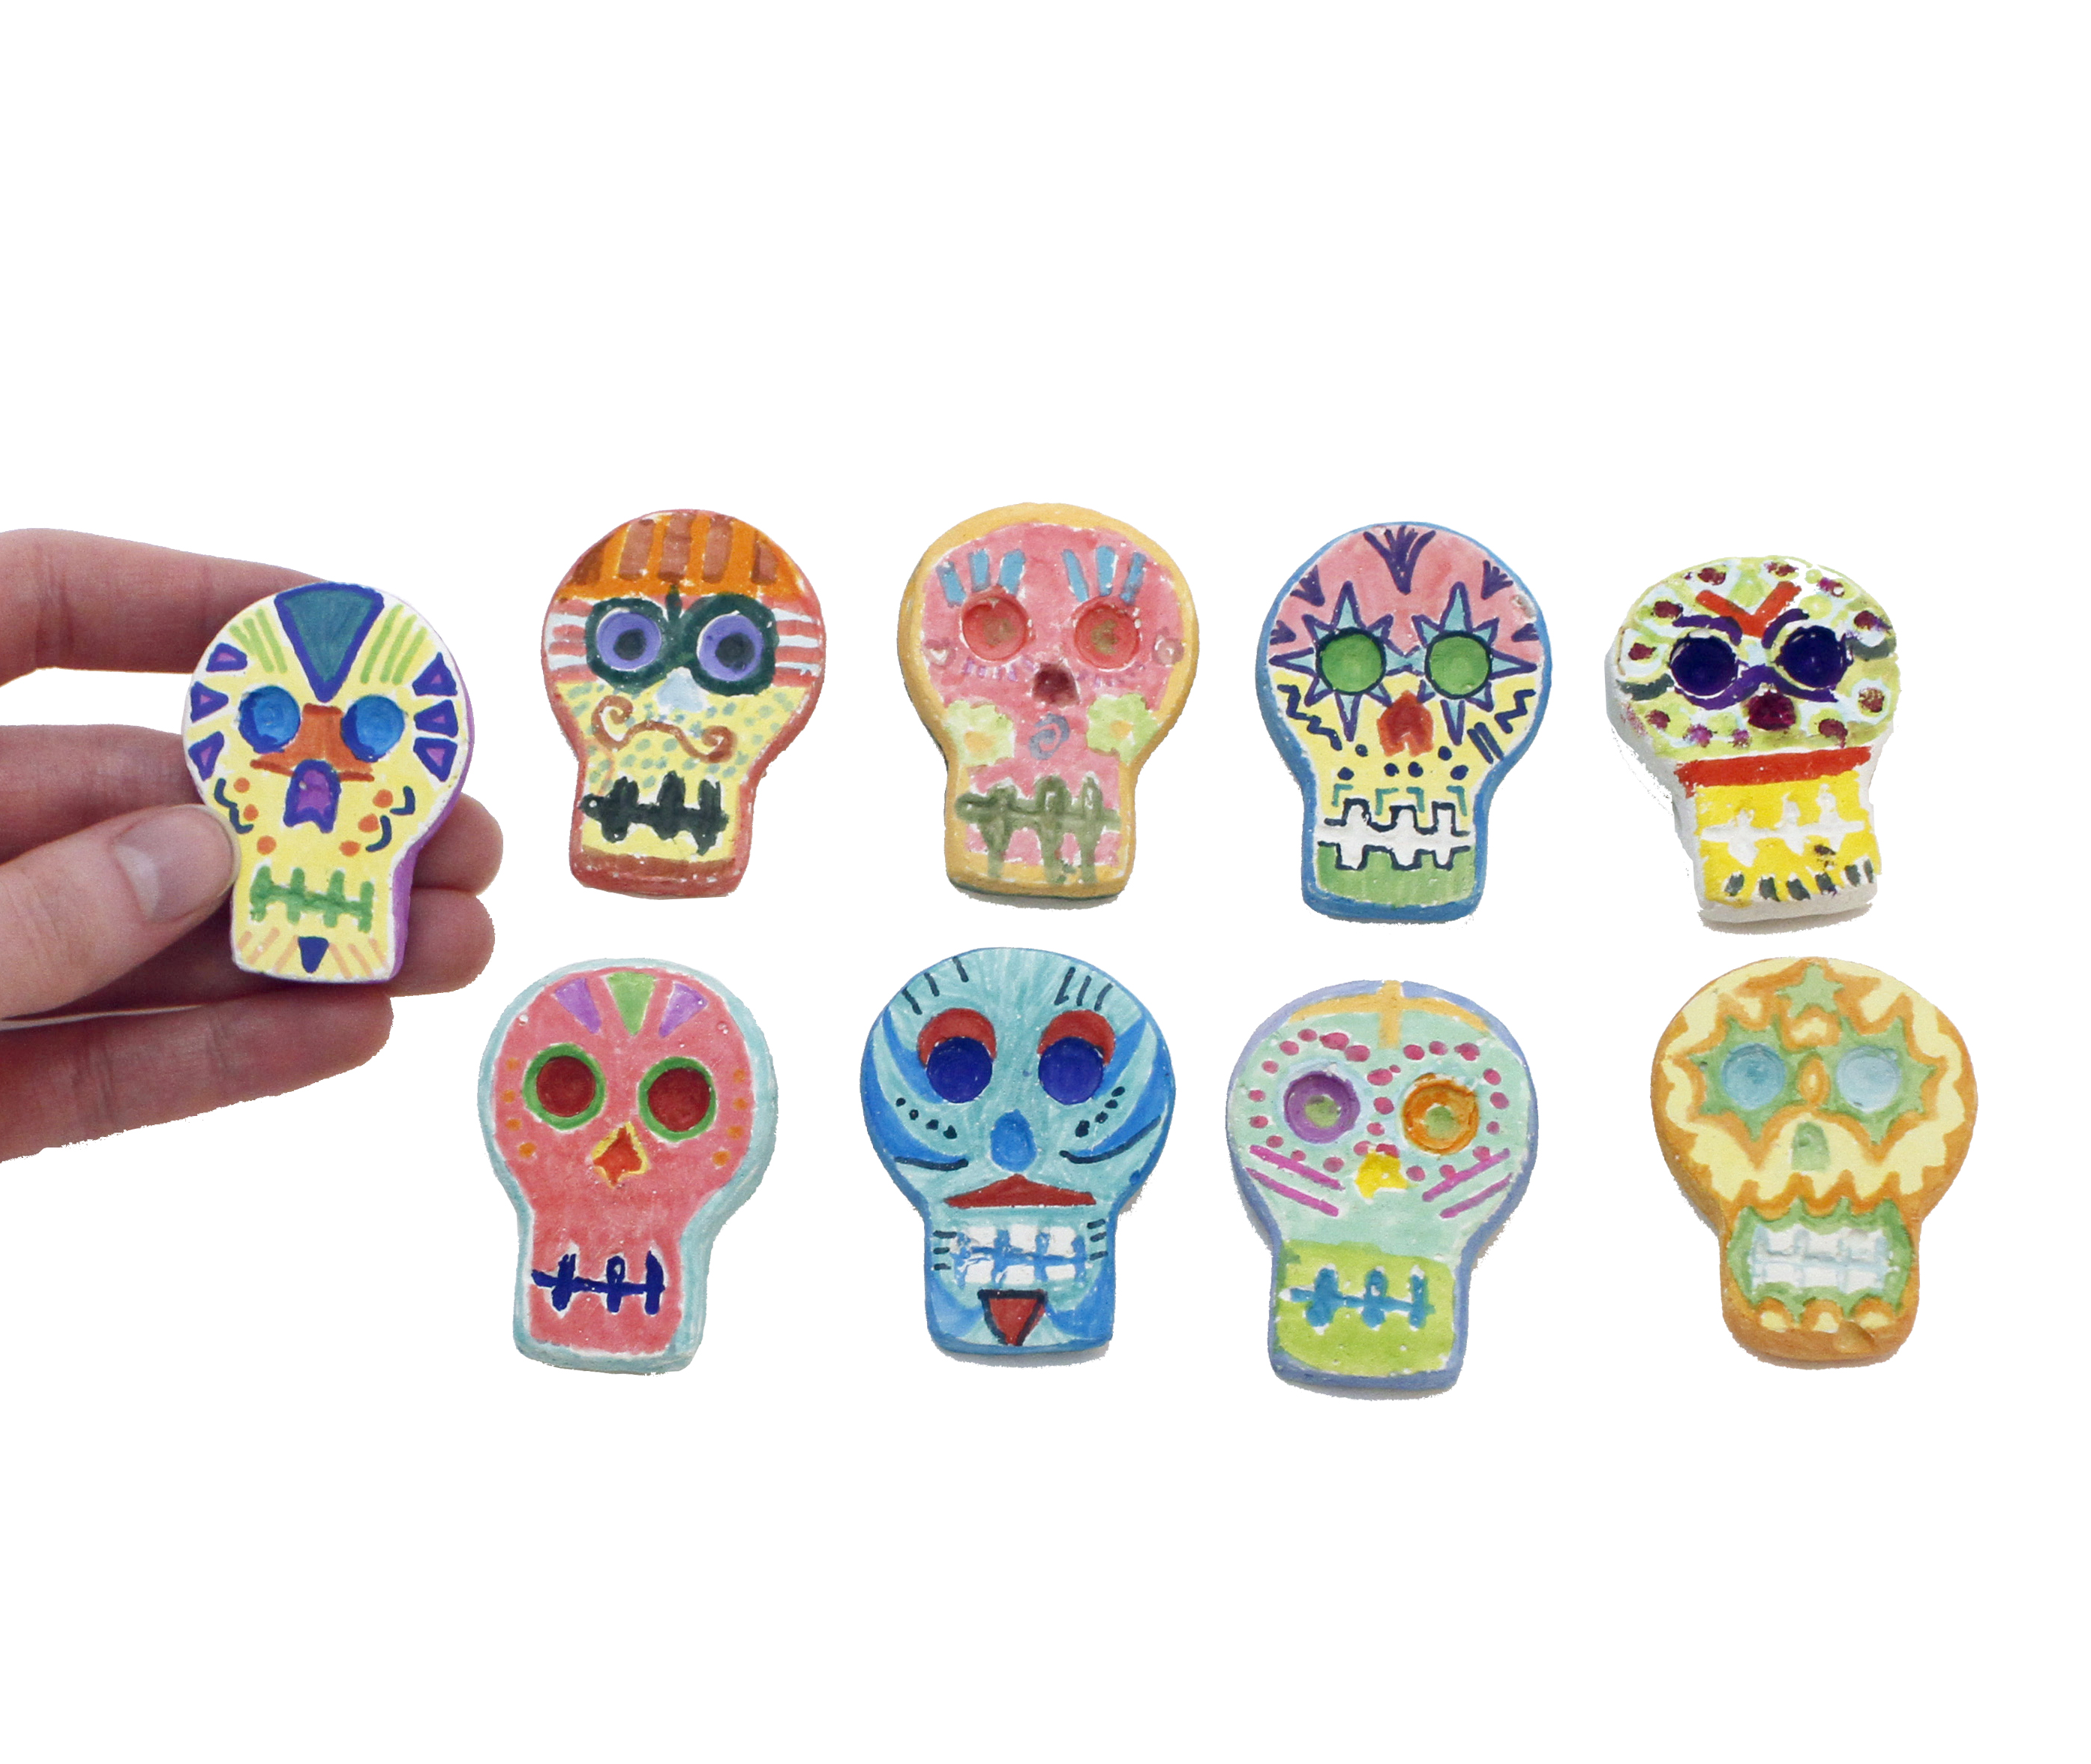 Day of the Dead Skull Magnet Kit - Day of the Dead Skull Magnet Kit